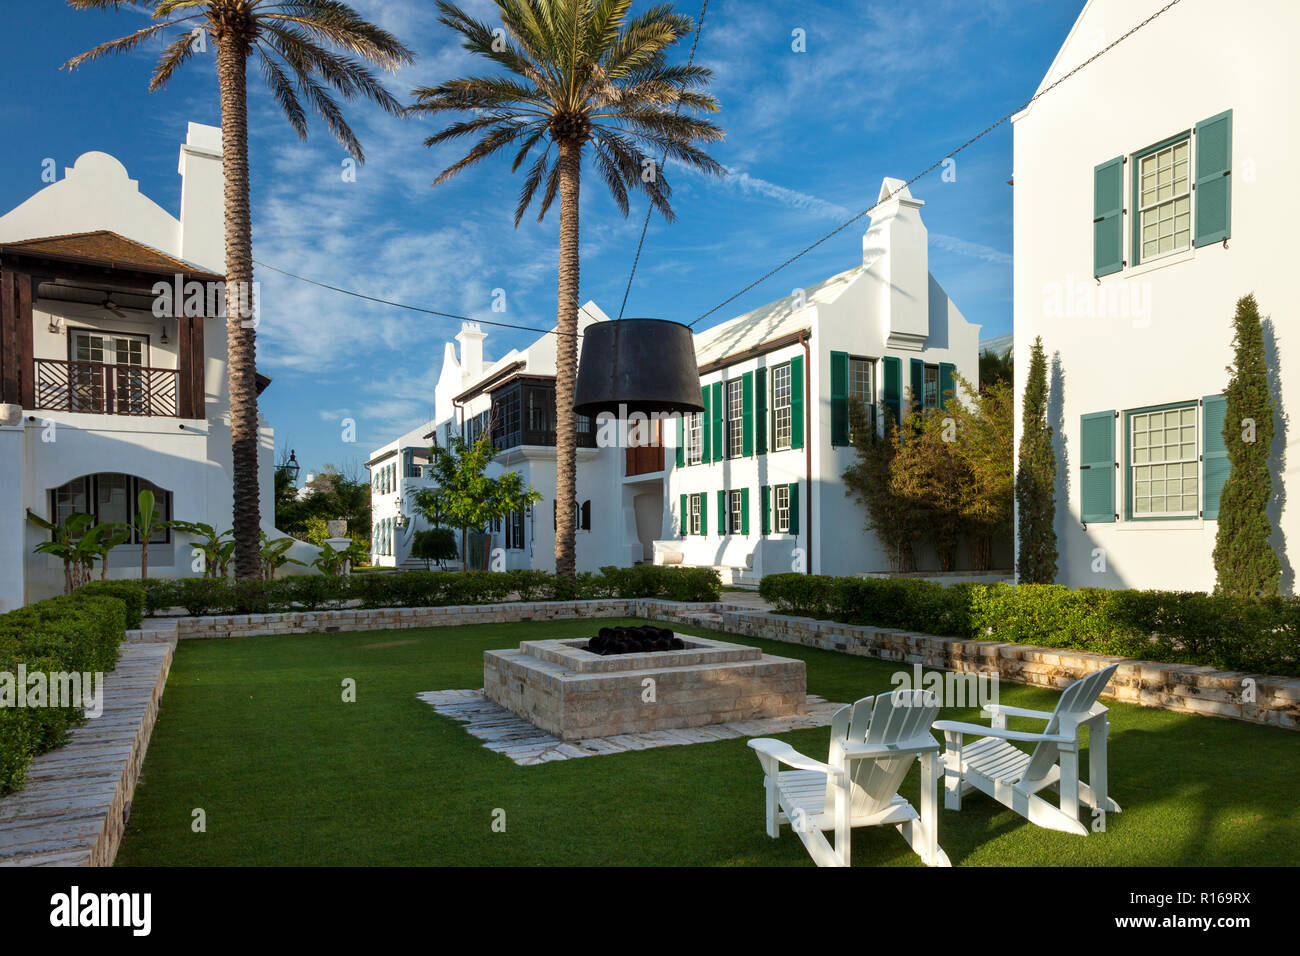 Luxury Homes And Condos In Alys Beach, Florida, USA